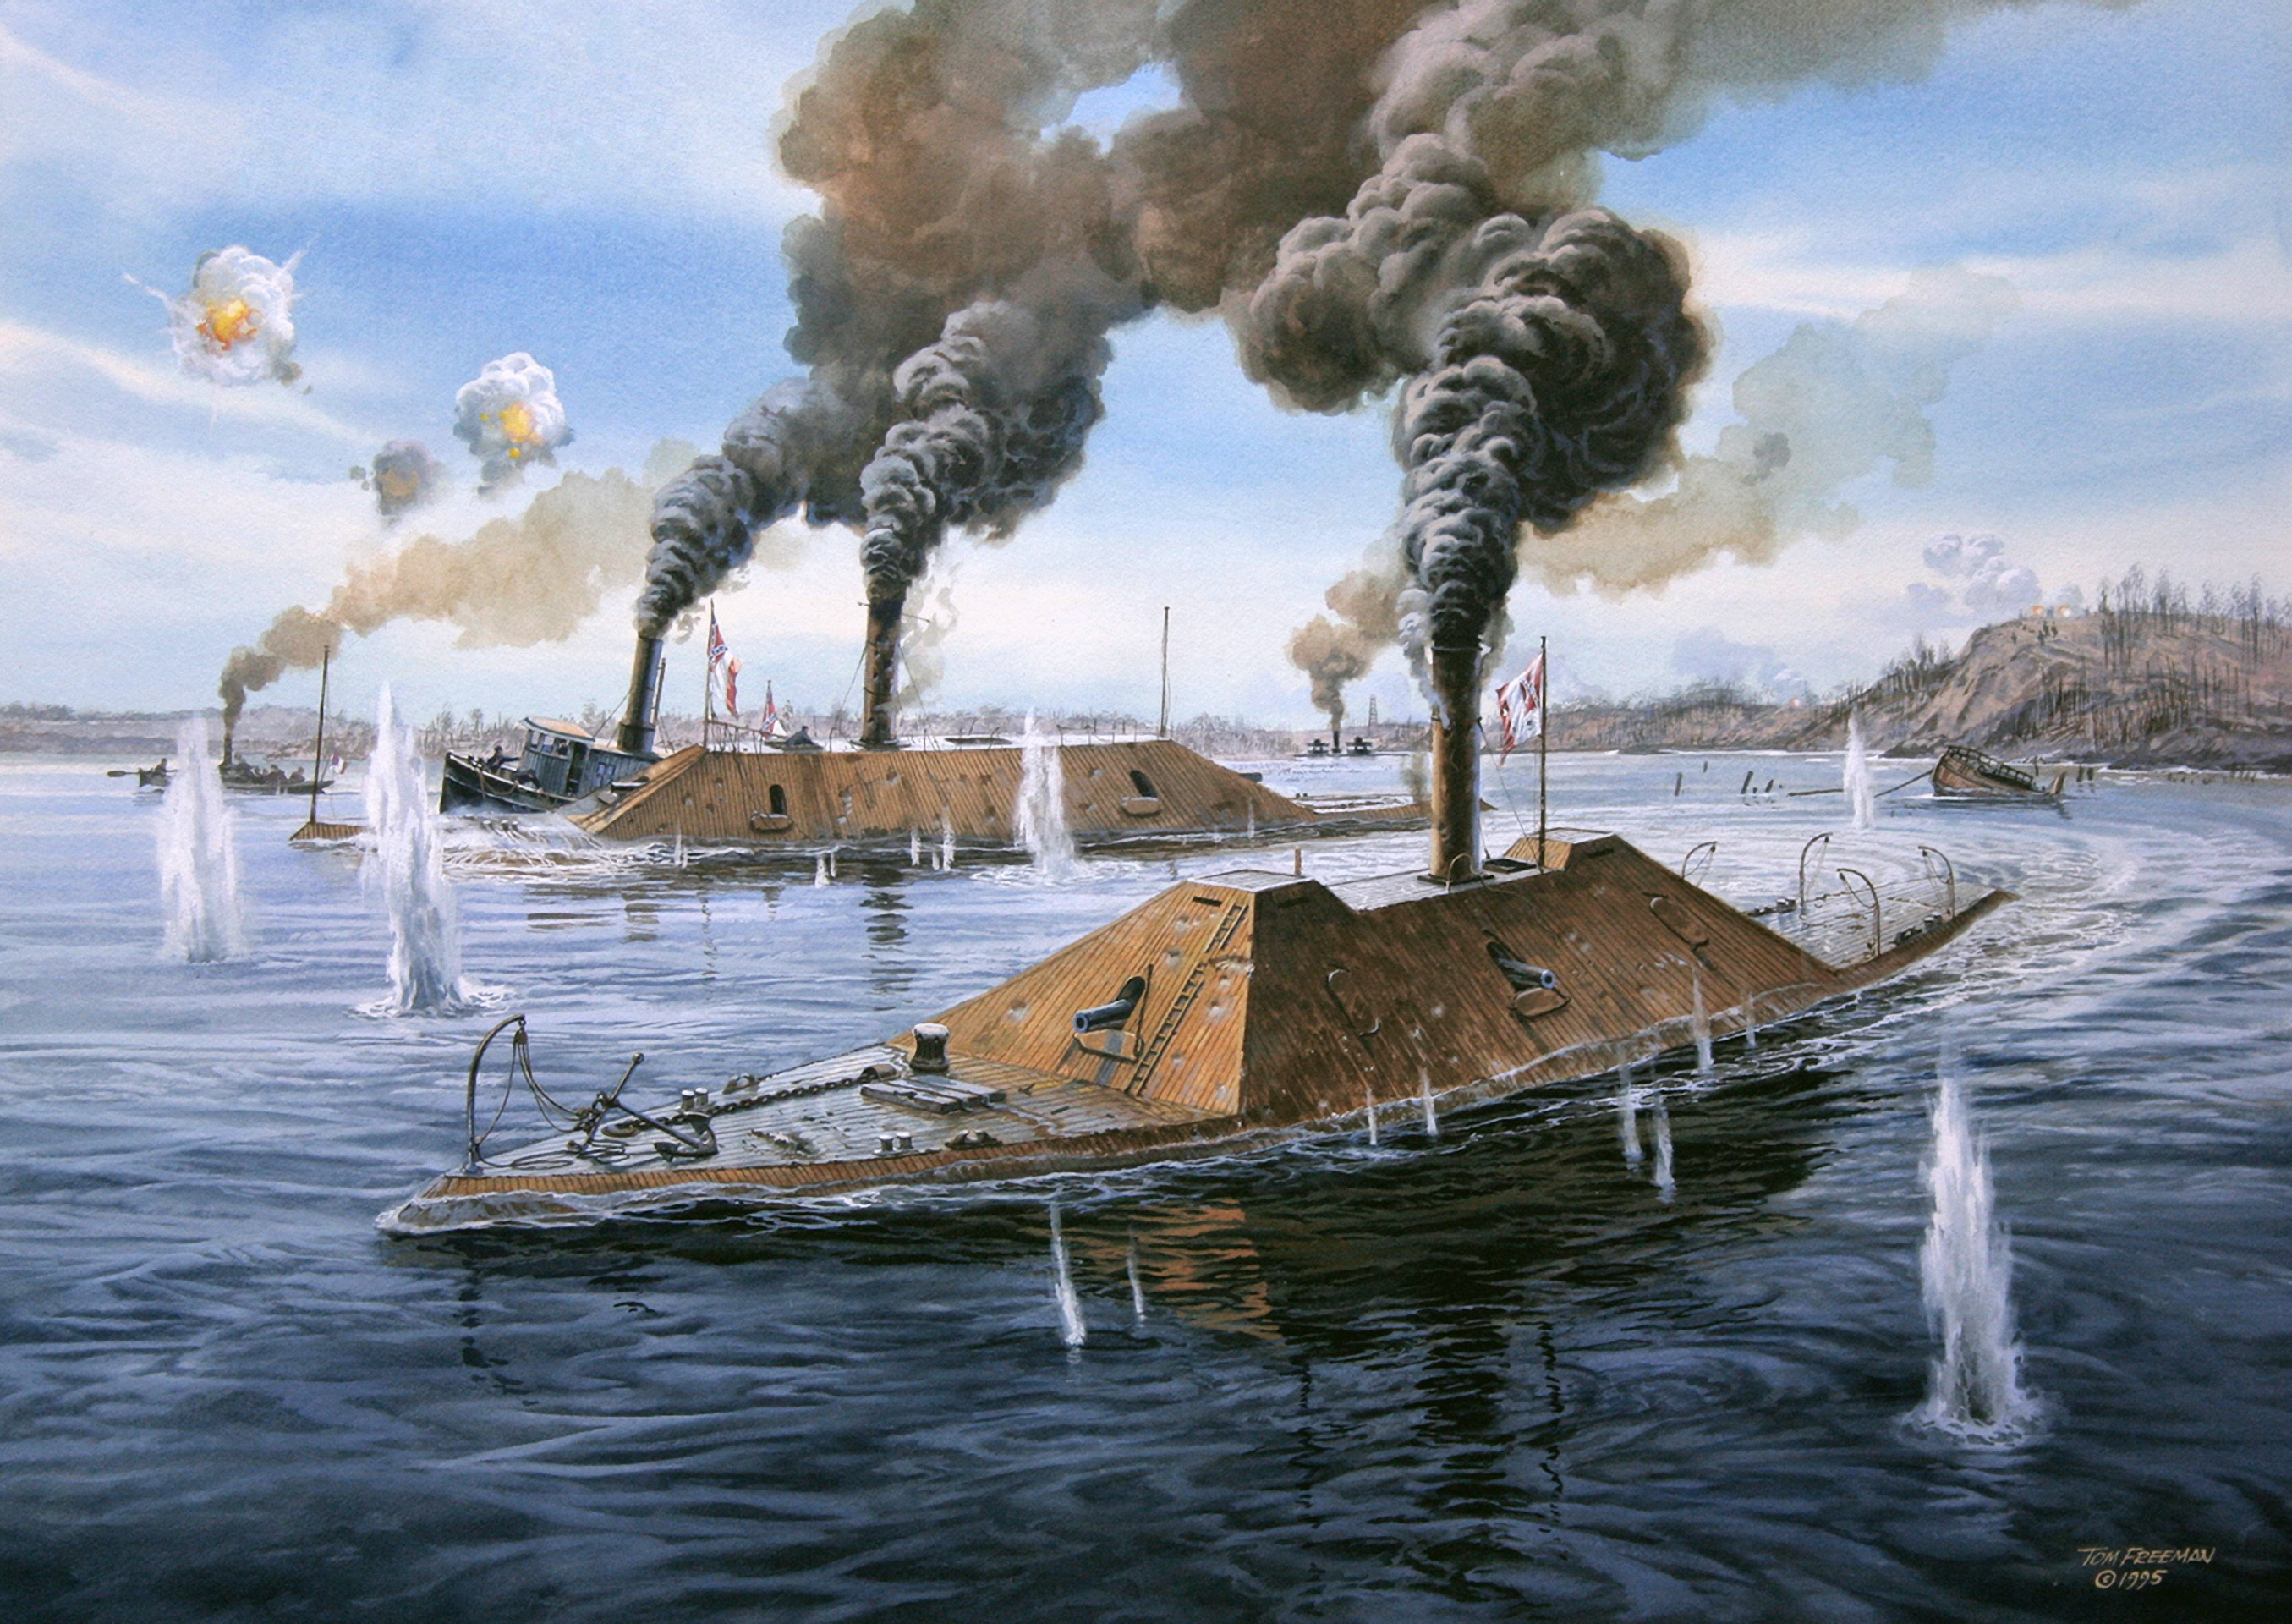 Wallpaper ironclad civil war united states naval battle wallpapers 2710x1920